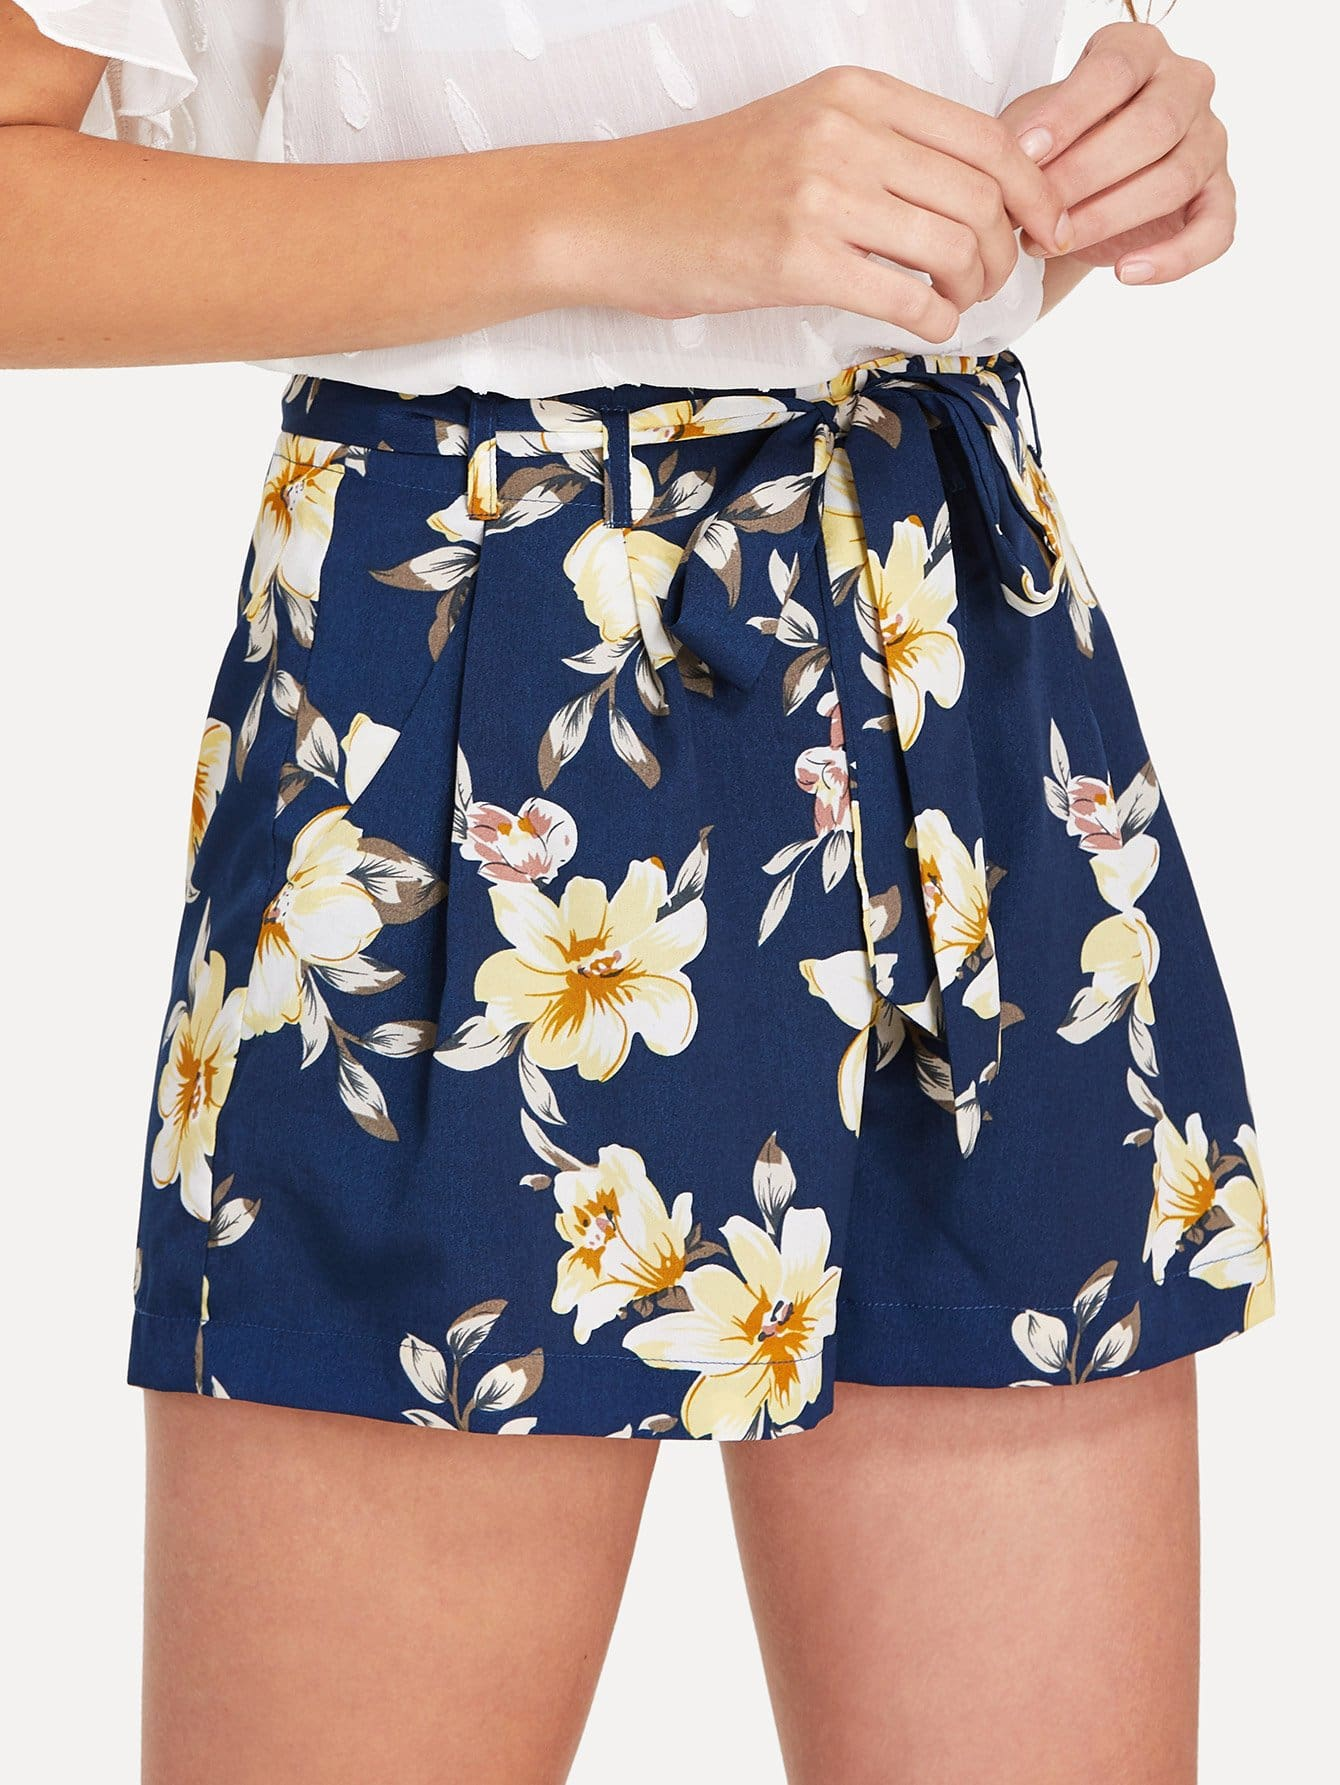 Self Belted Boxed Pleated Floral Shorts self belted boxed pleated shorts